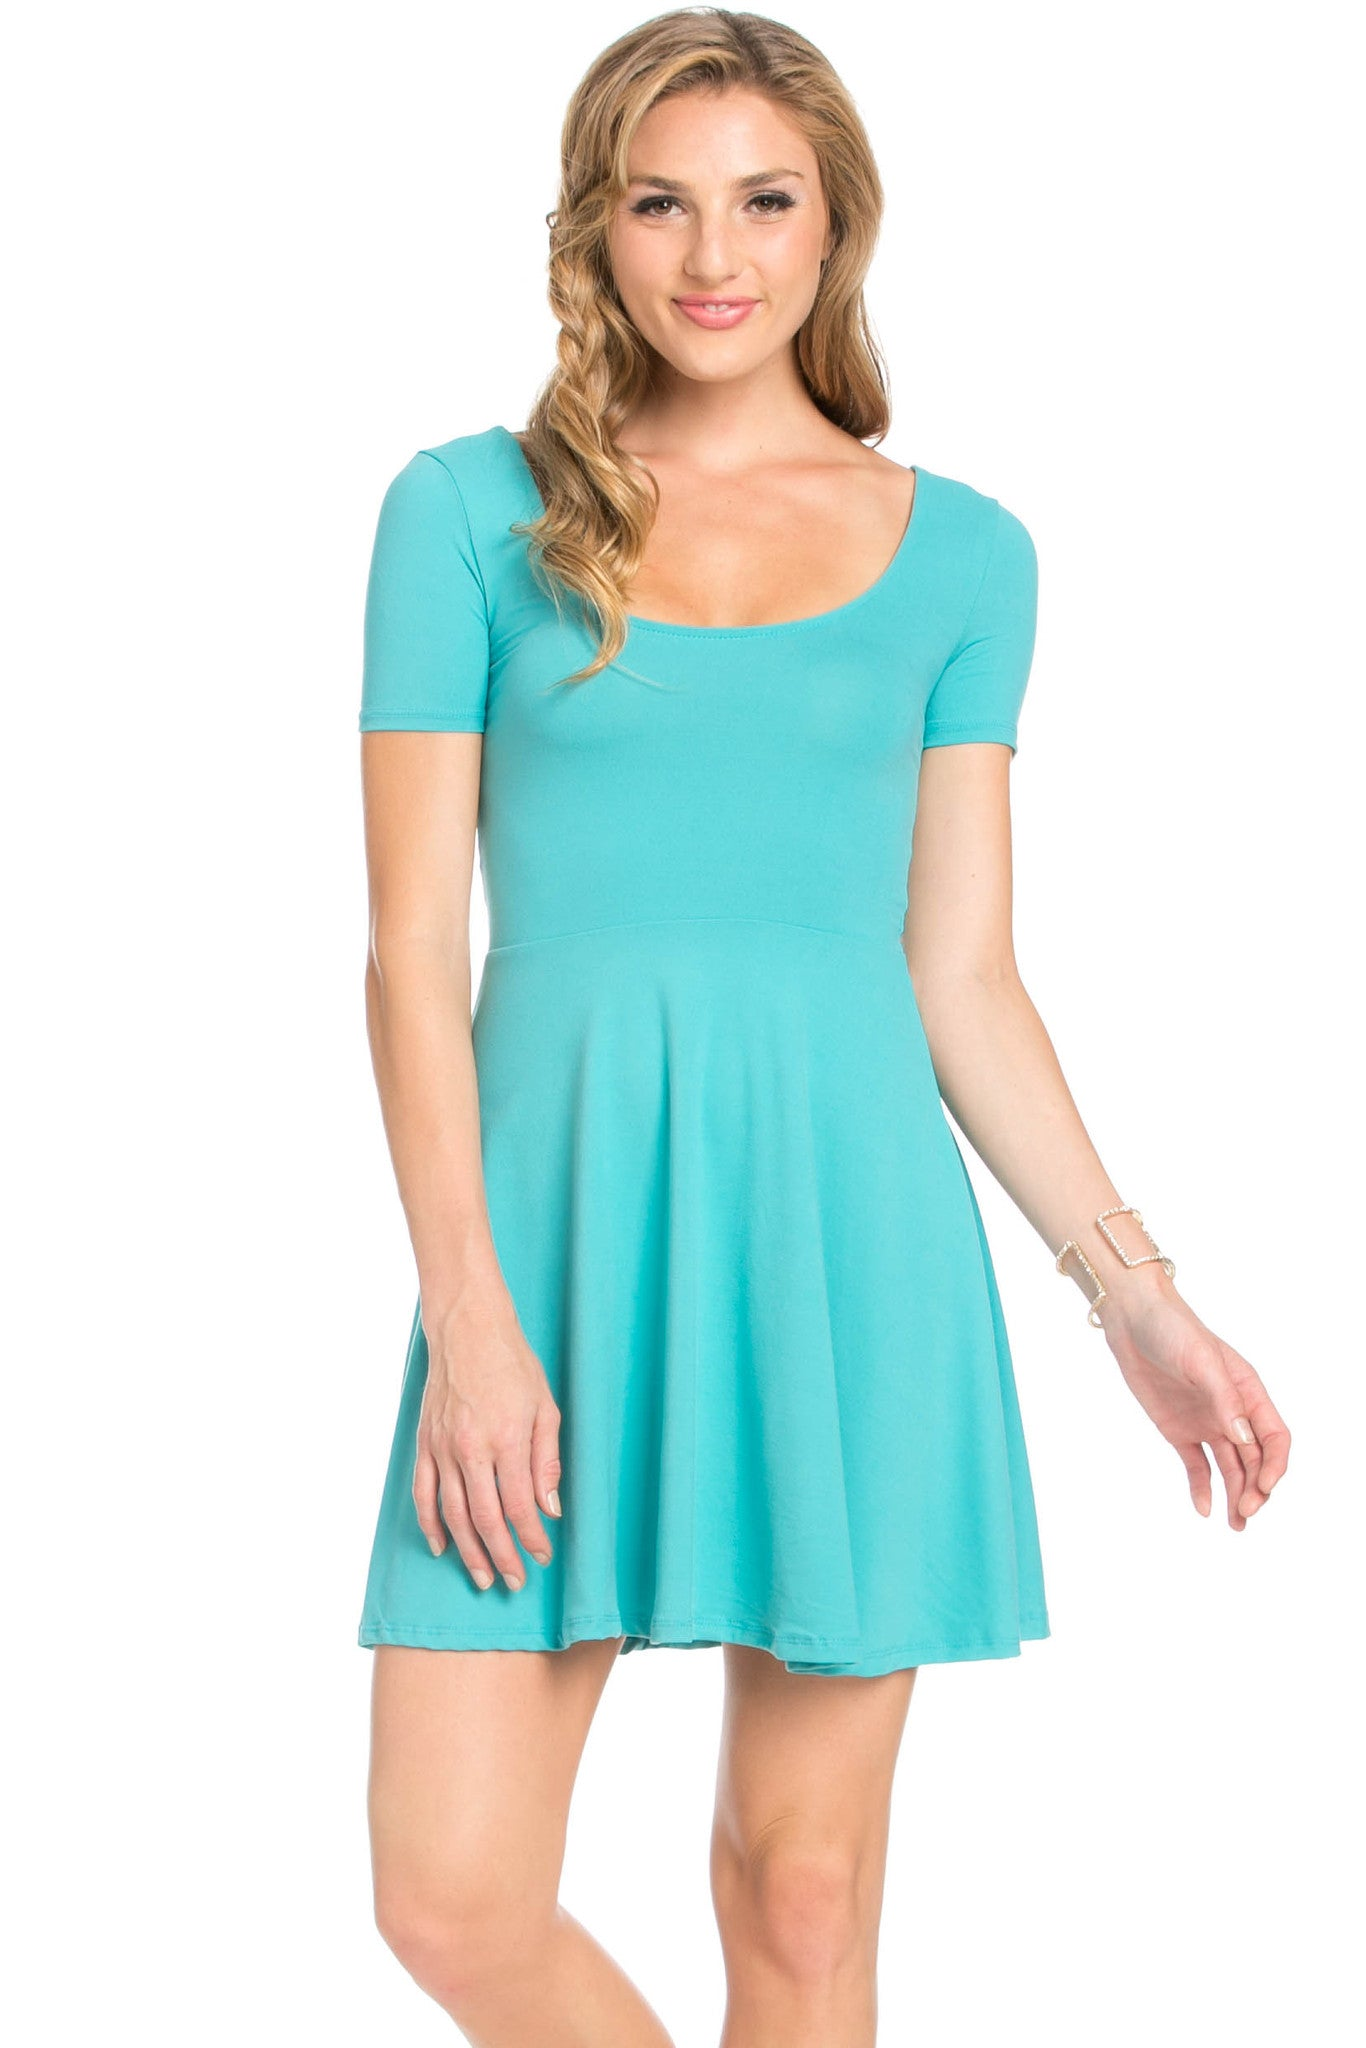 Micro Suede Jade Mini Dress - Dresses - My Yuccie - 2